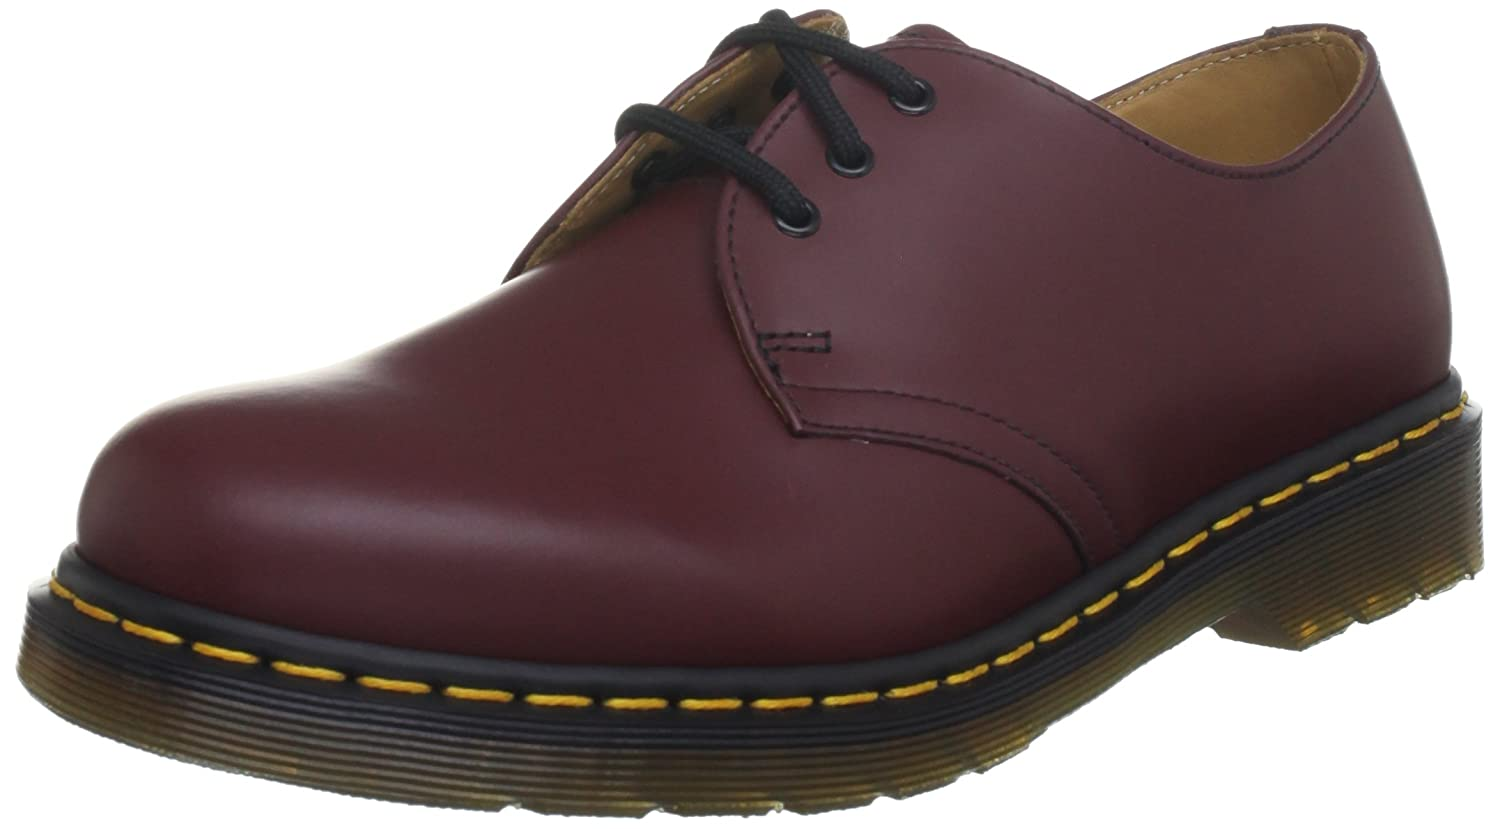 Dr. Flâneurs Martens 1461 Pw, Flâneurs mixte Rouge adulte - Smooth) noir, UK EU Rouge (Cherry Red Smooth) e787af6 - therethere.space